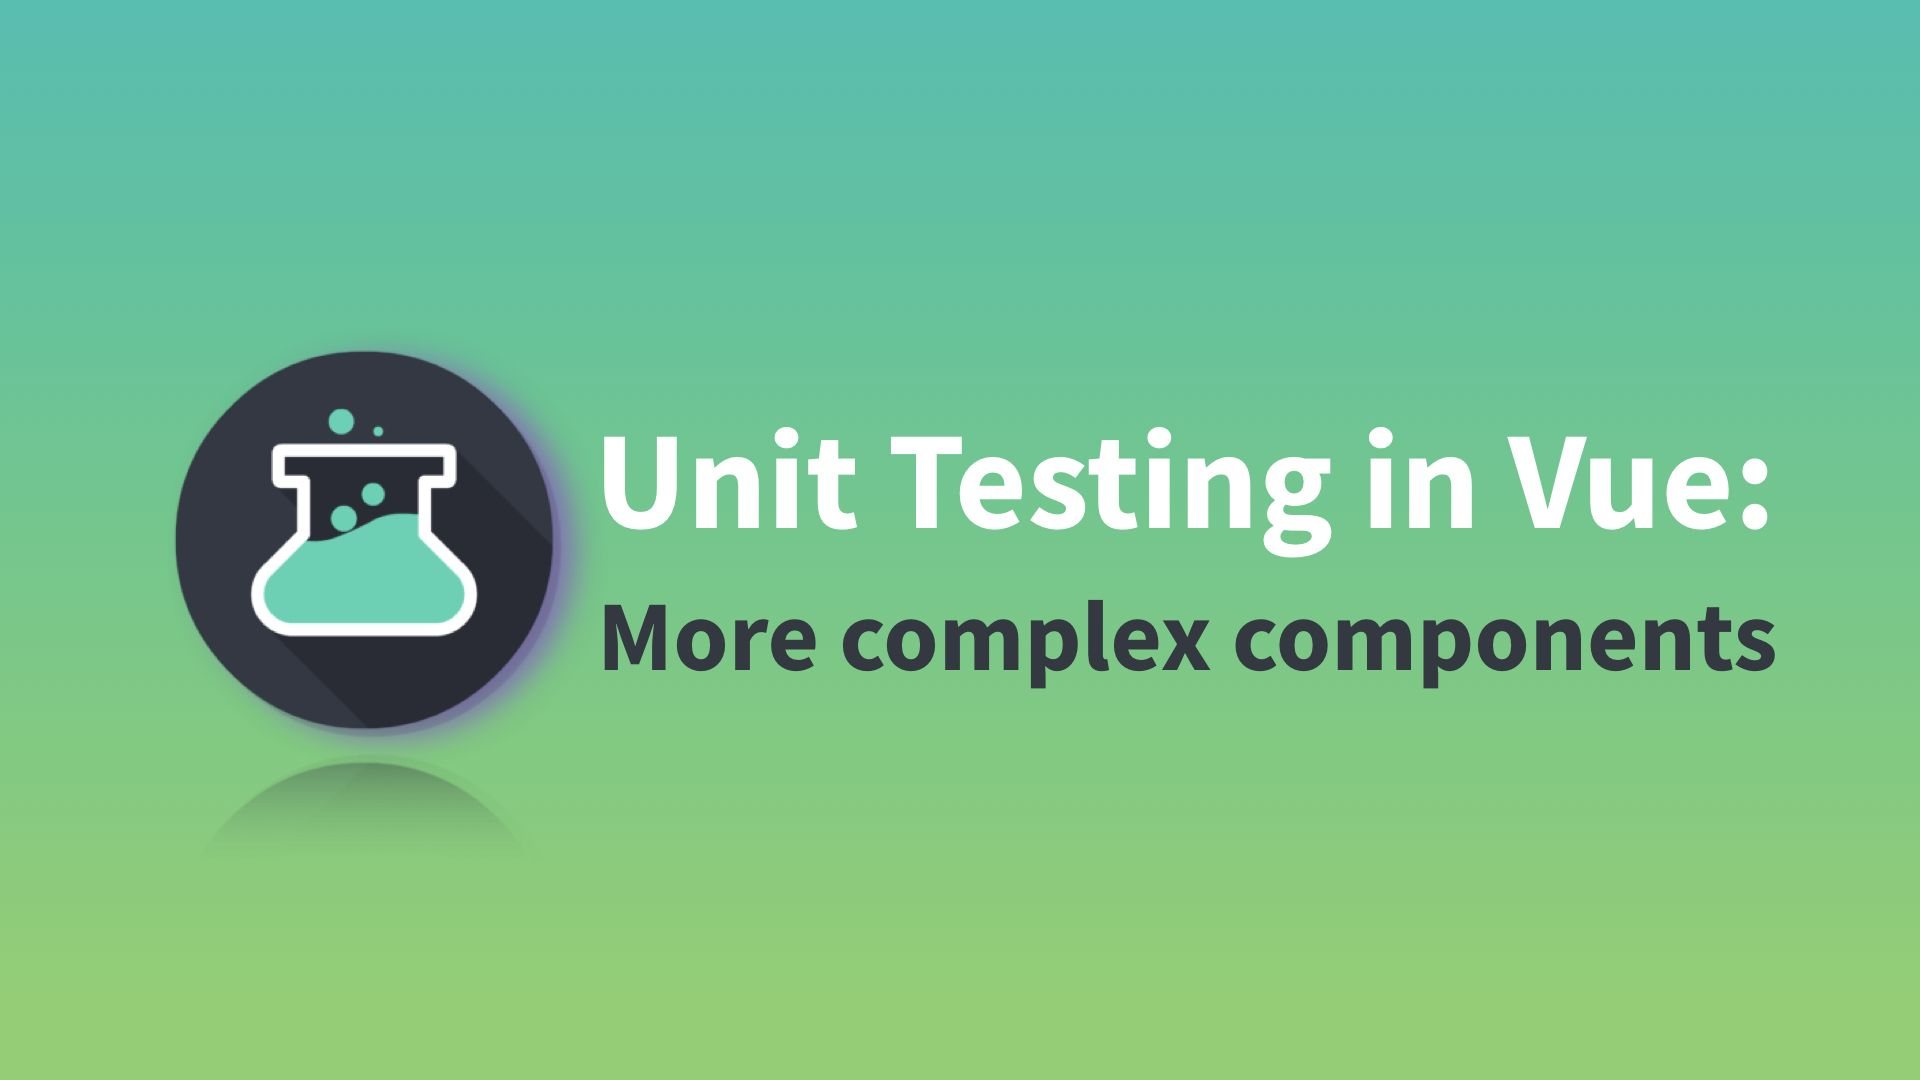 Unit Testing in Vue: More complex components